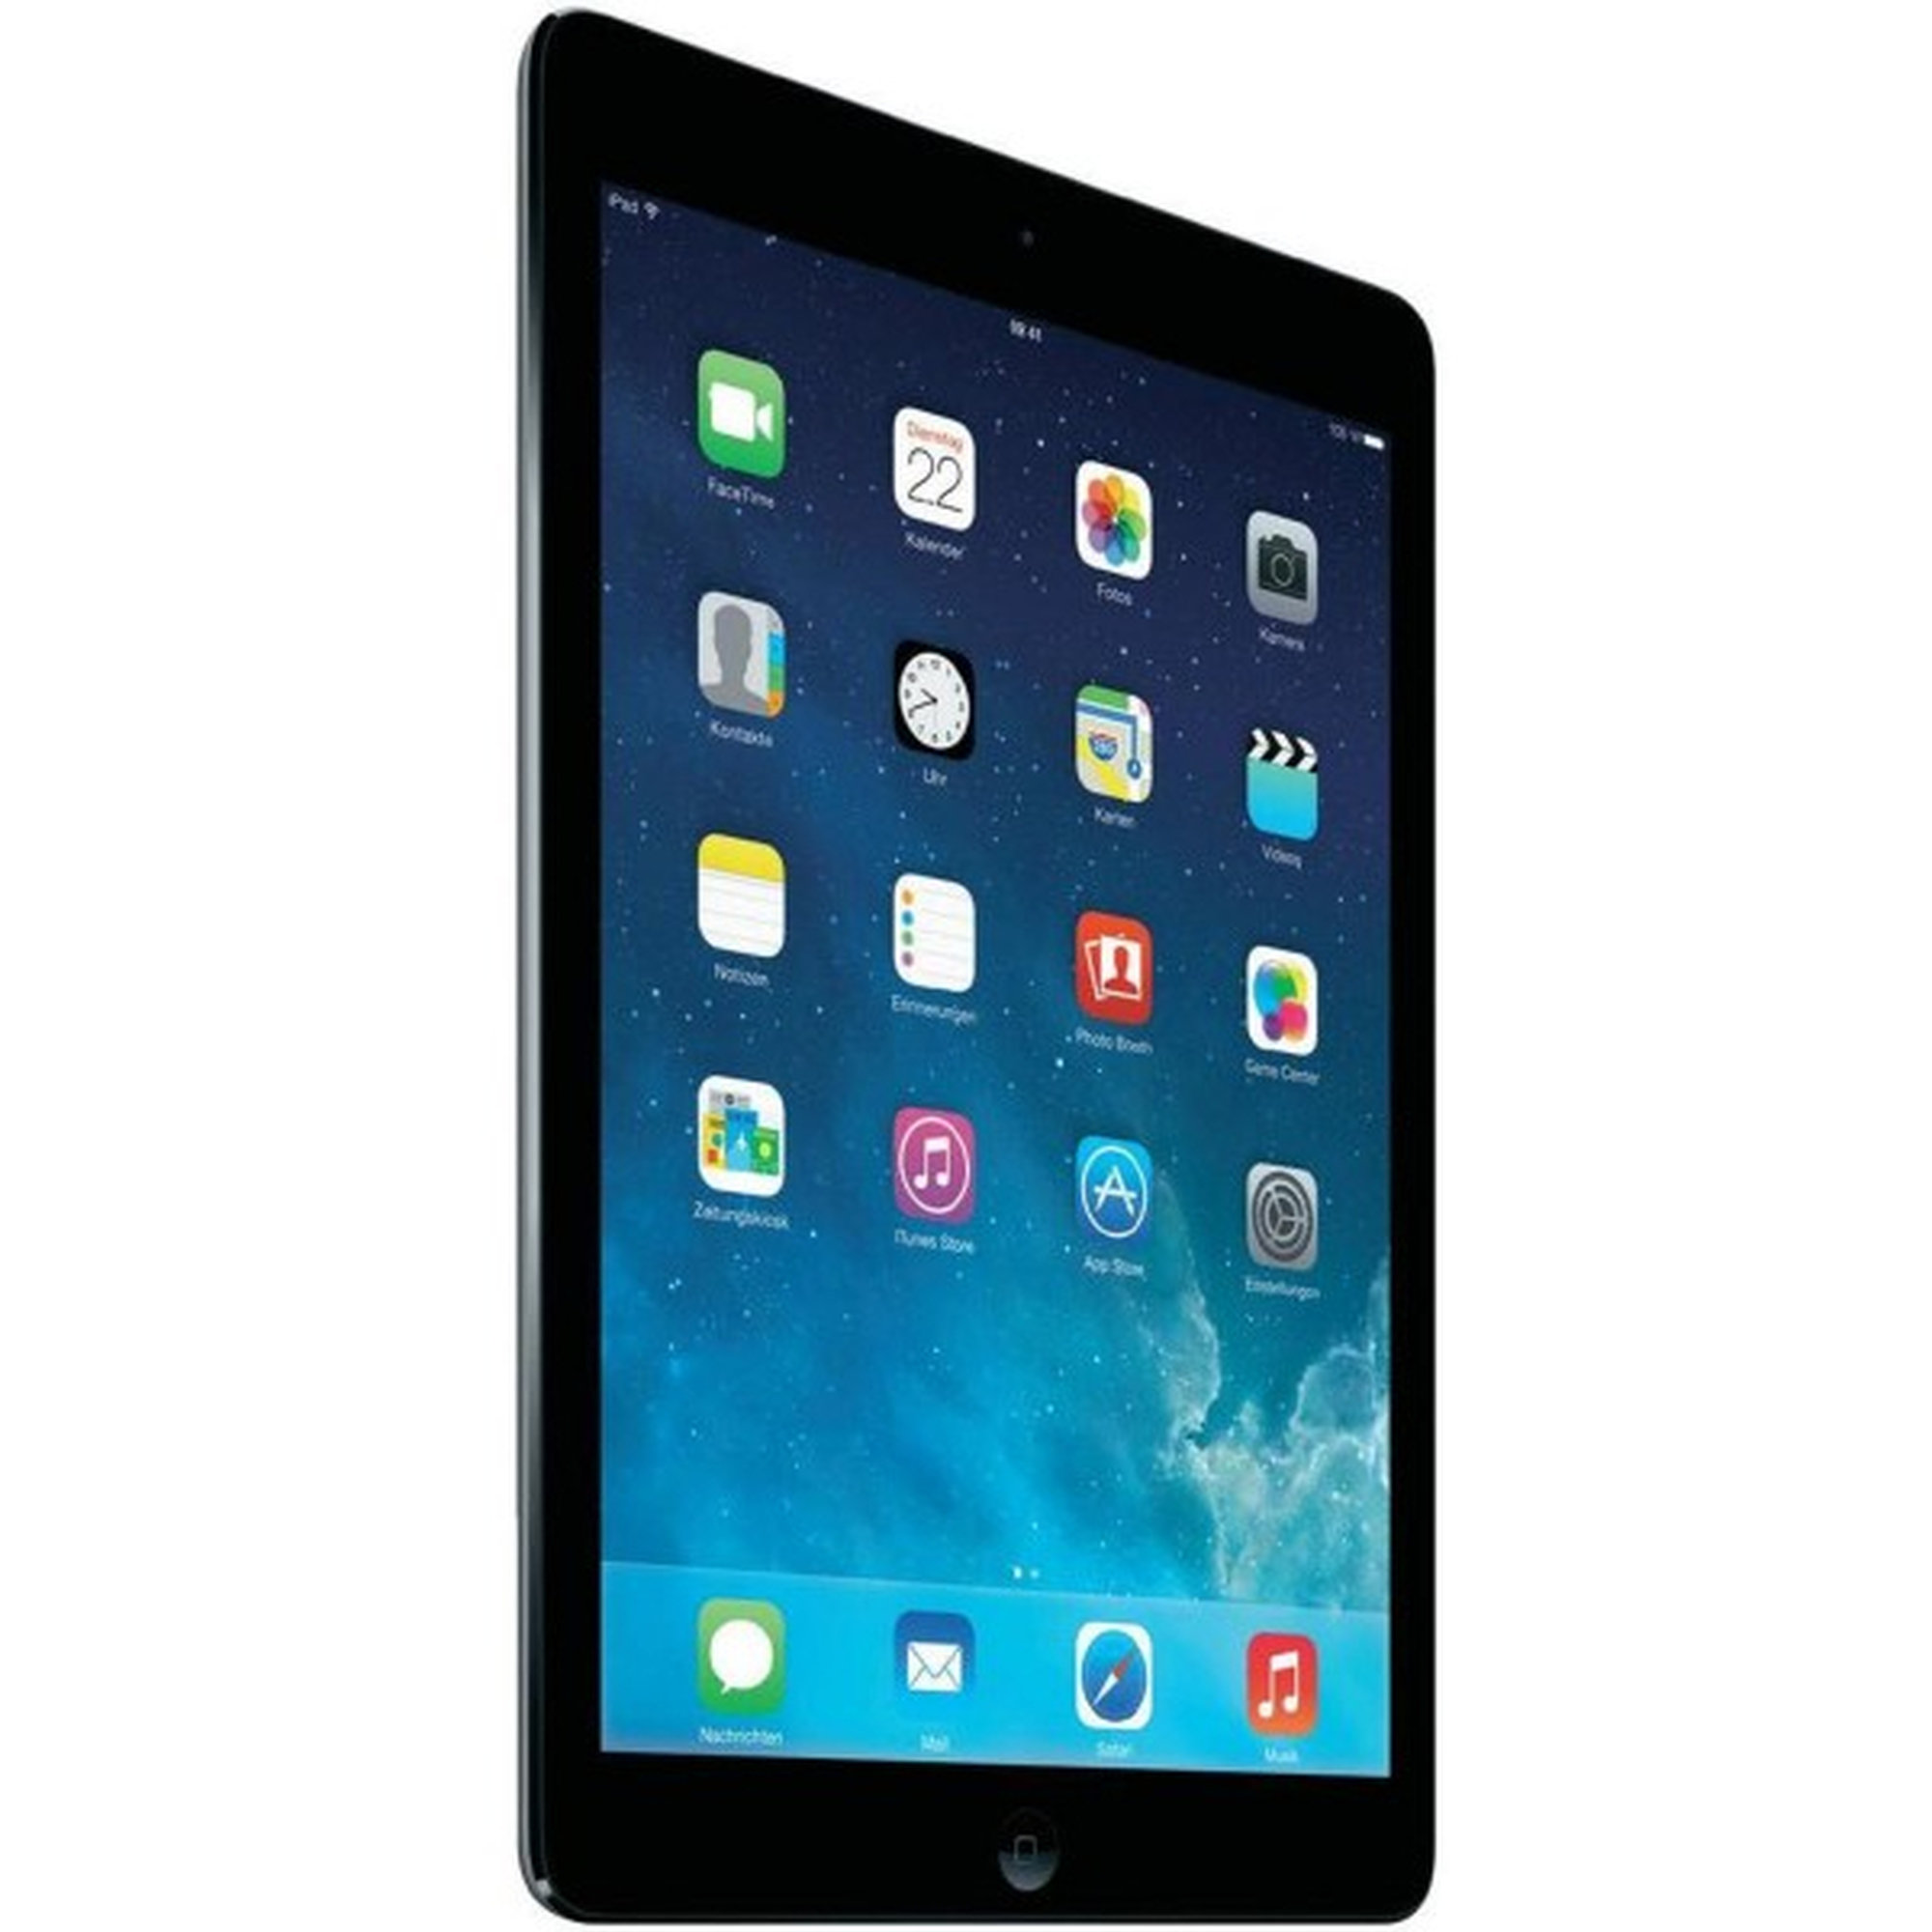 ipad air 16gb spacegrau wlan ios tablet pc ohne vertrag 9. Black Bedroom Furniture Sets. Home Design Ideas